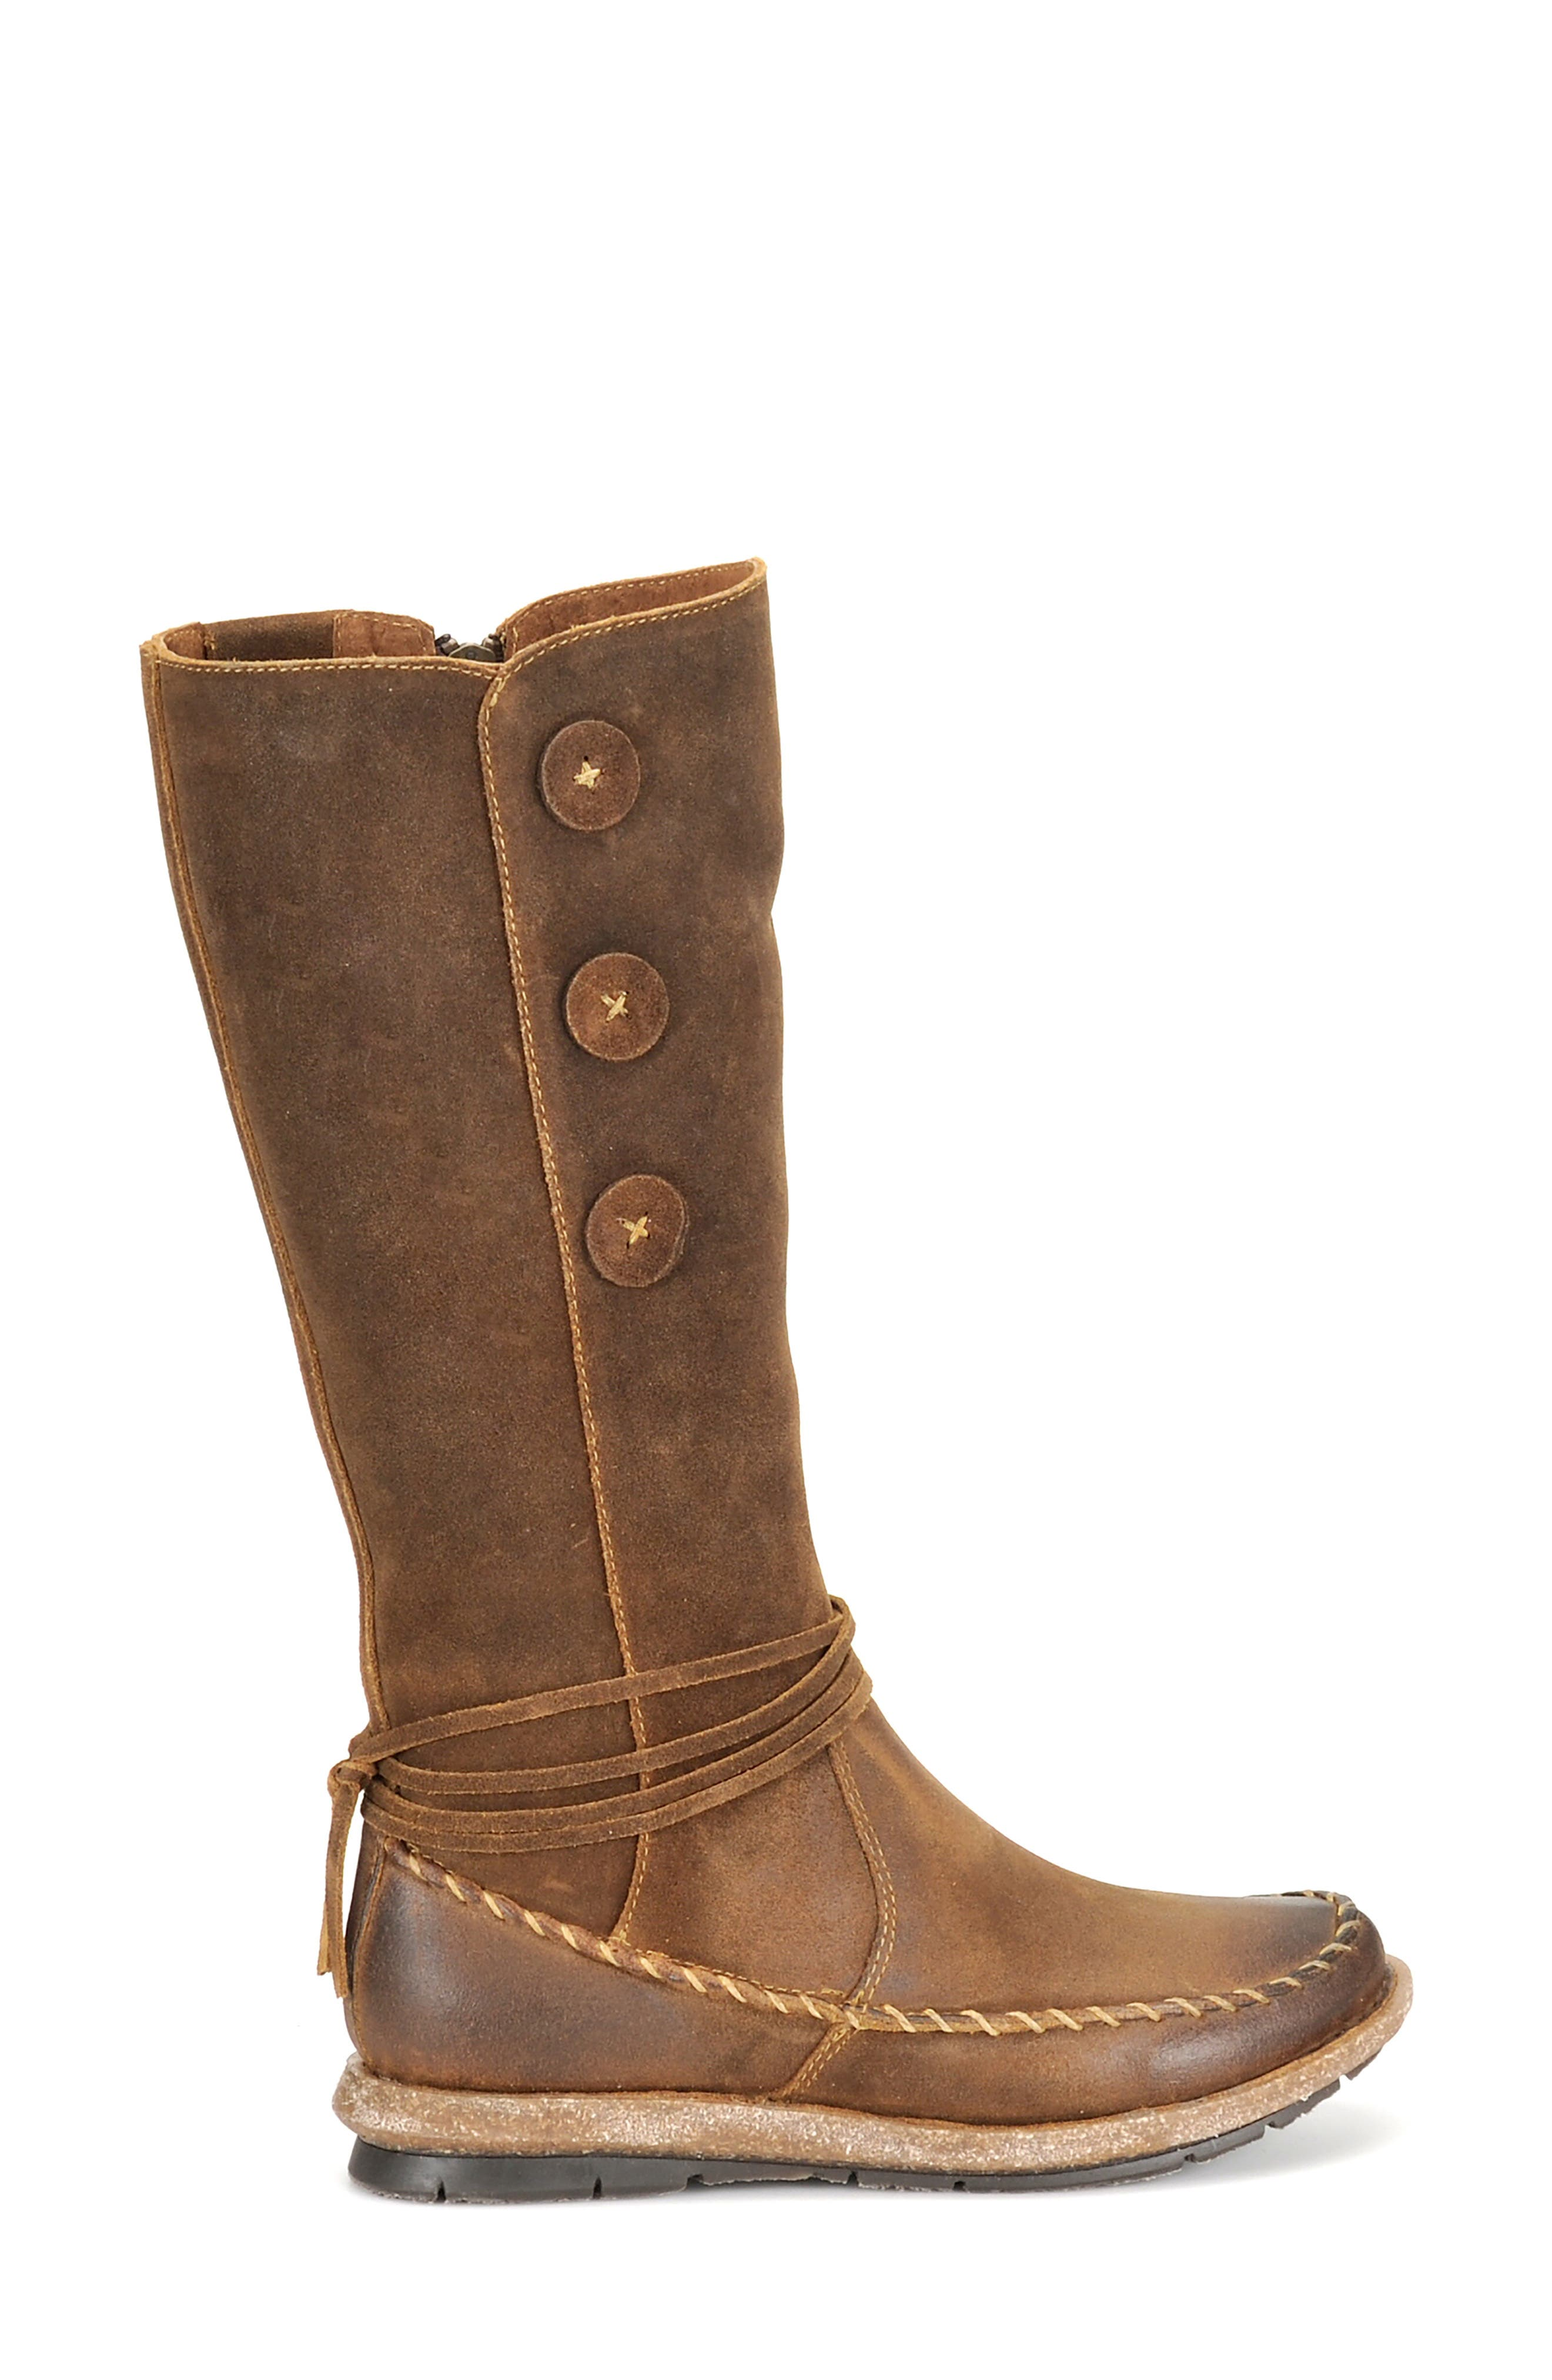 Torrey Boot,                             Alternate thumbnail 3, color,                             RUST DISTRESSED LEATHER